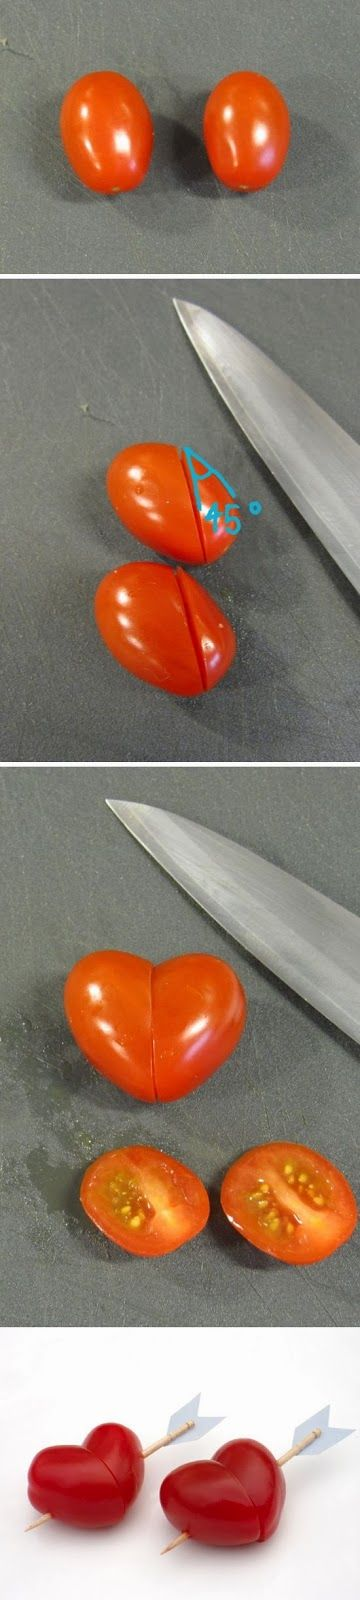 Heart Tomato Skewers for Valentine's Day | Sweet Foodz